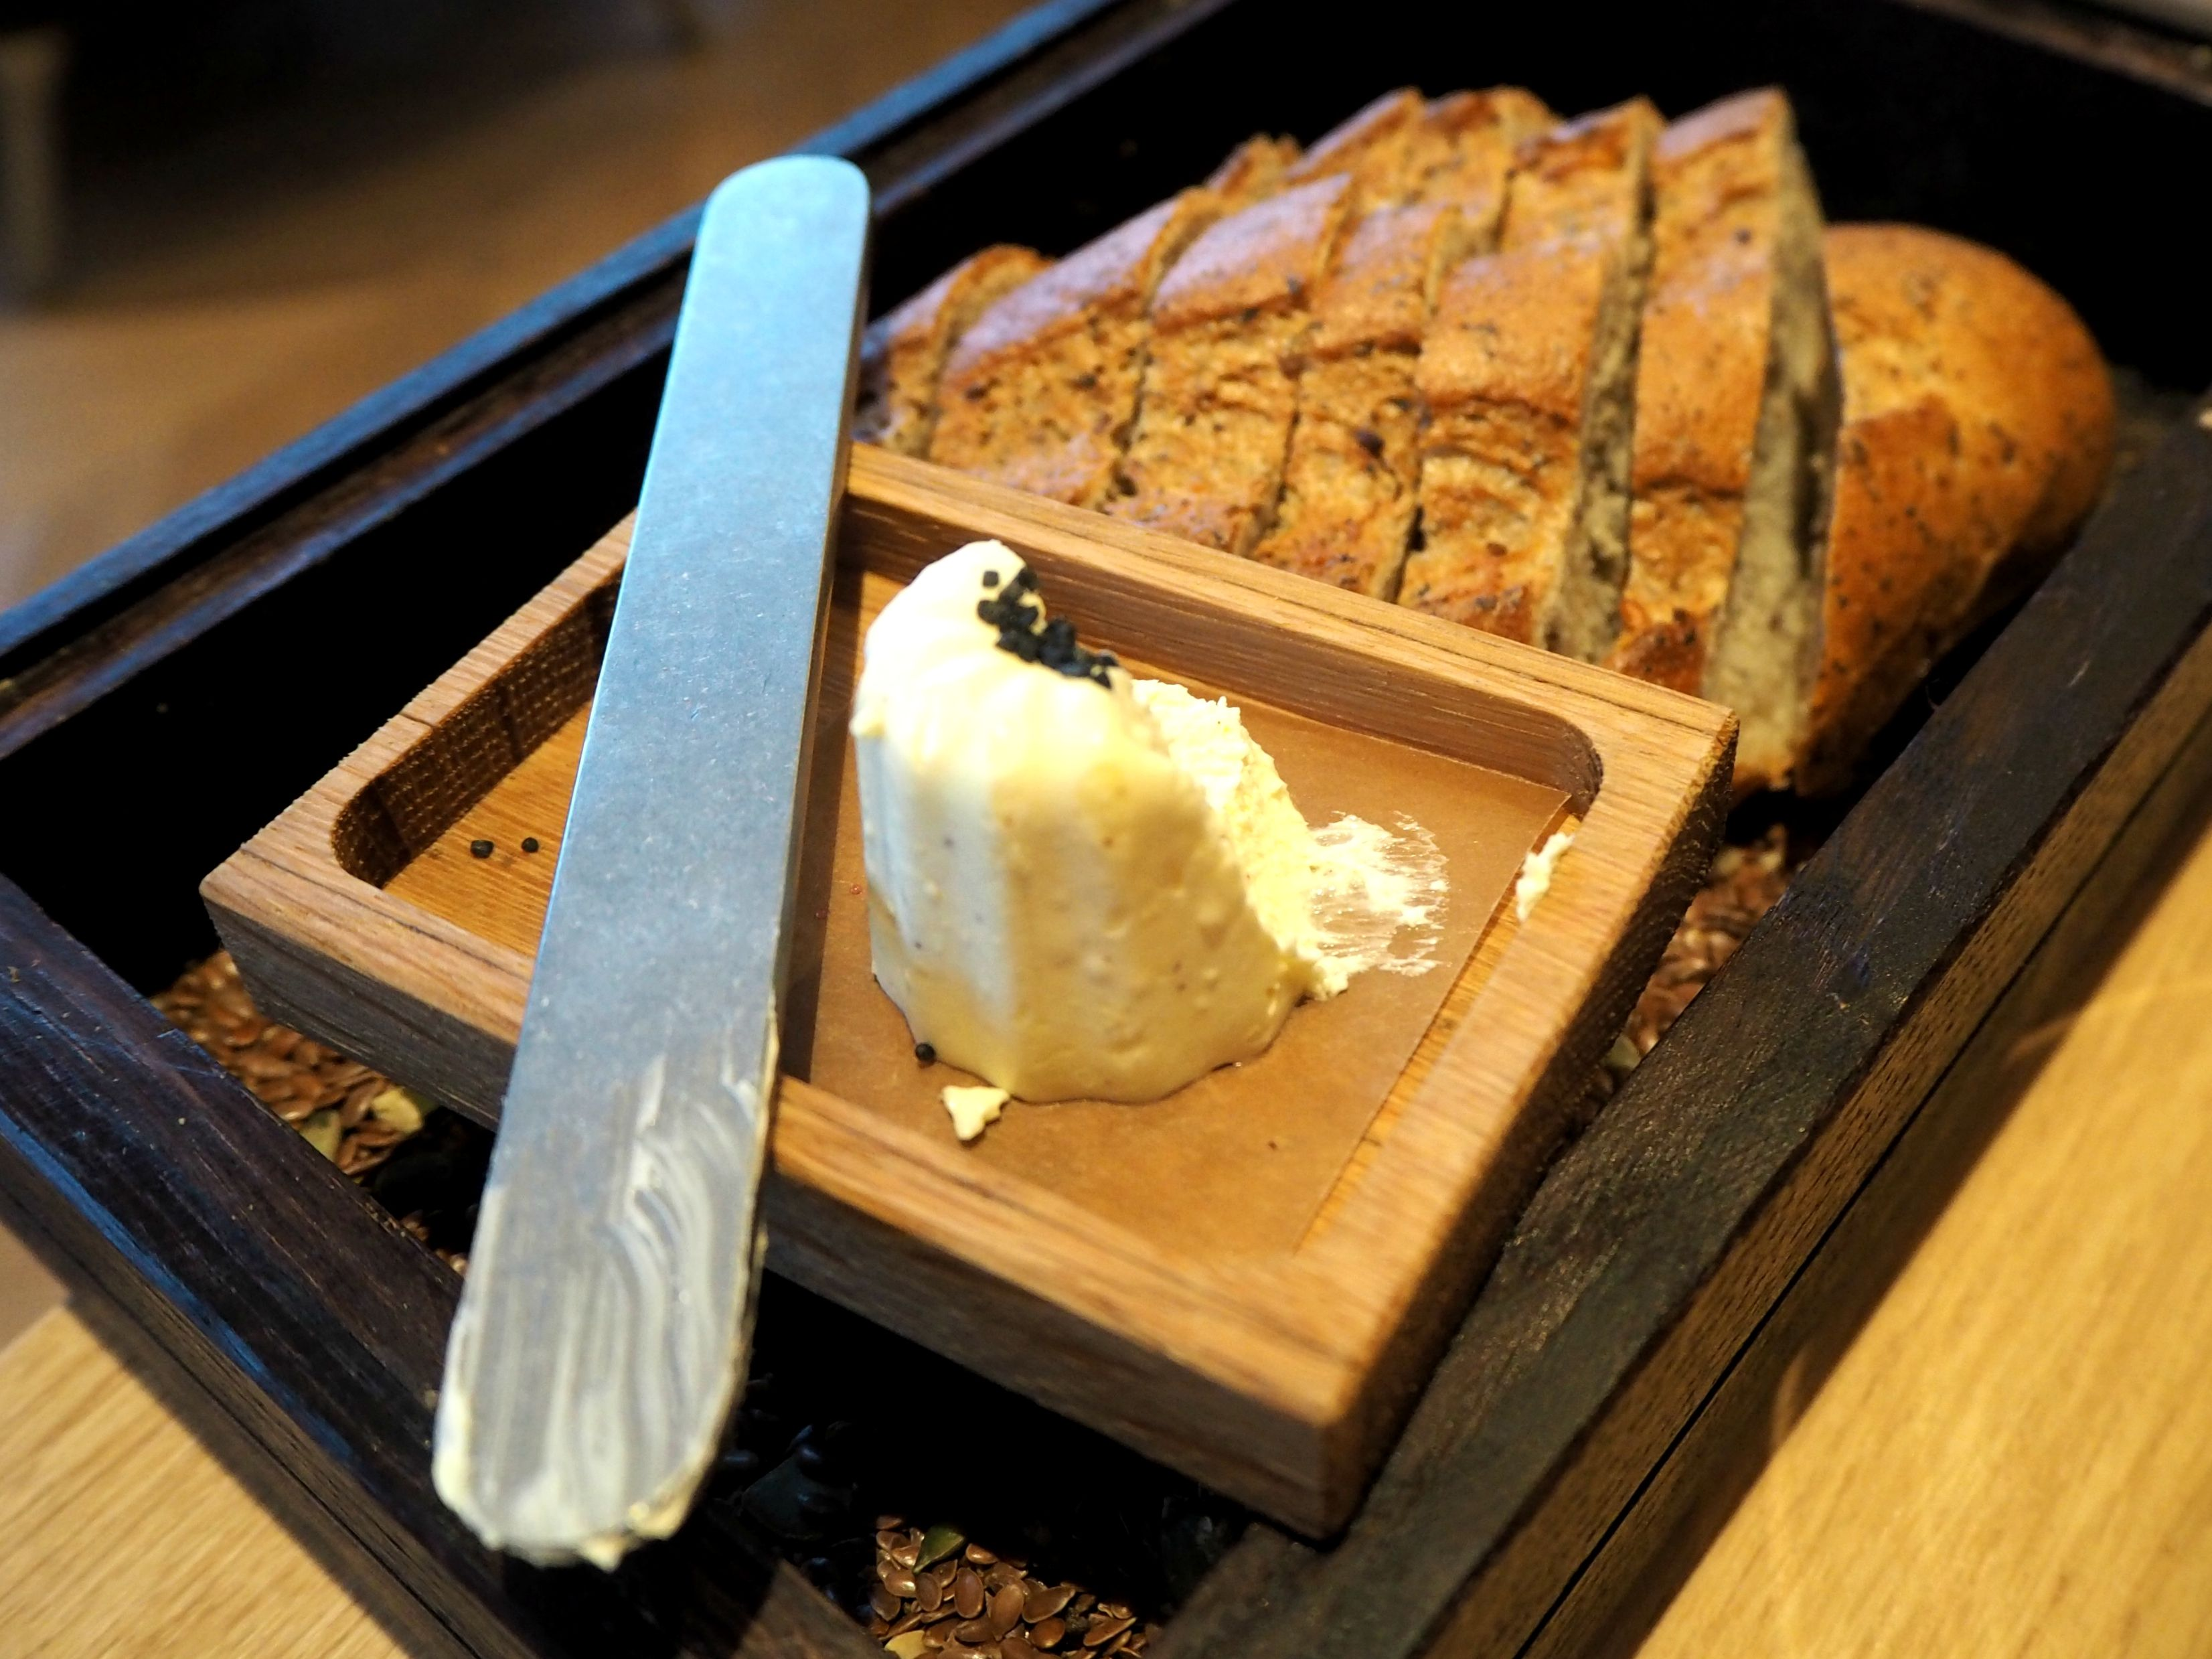 Viking 'Mjød' bread at FireLake Stavanger